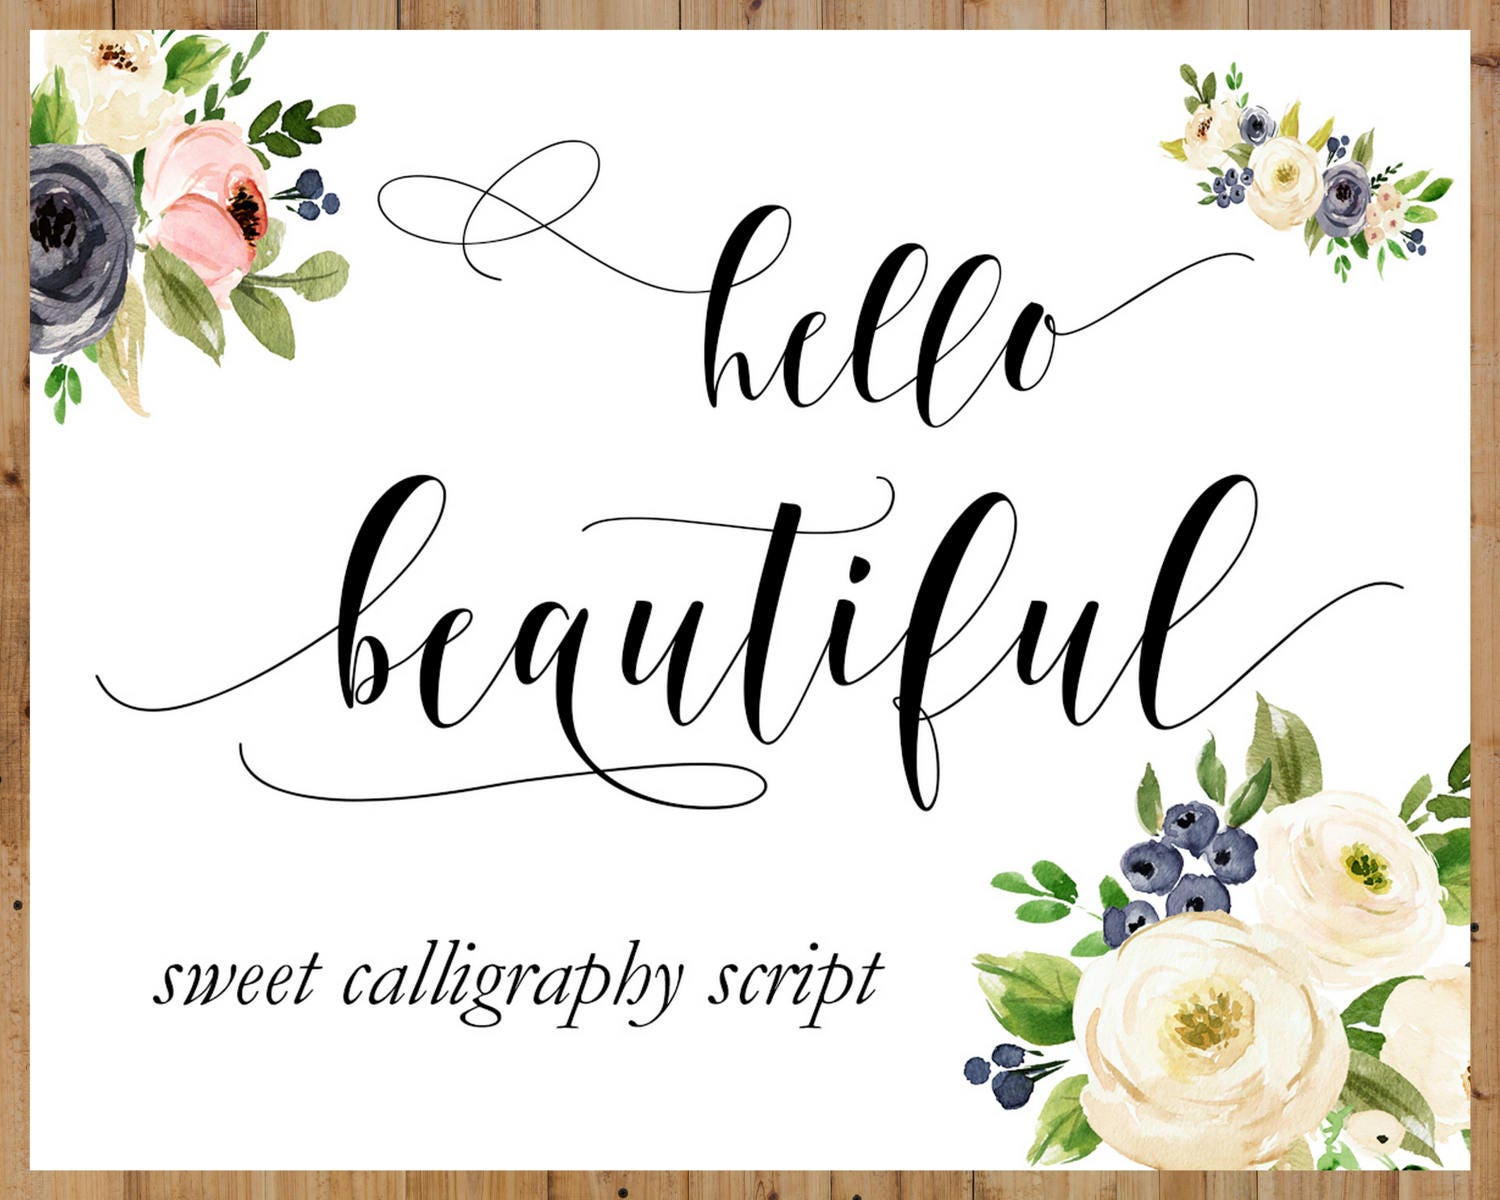 Calligraphy swirly digital font handwritten digital font T in calligraphy